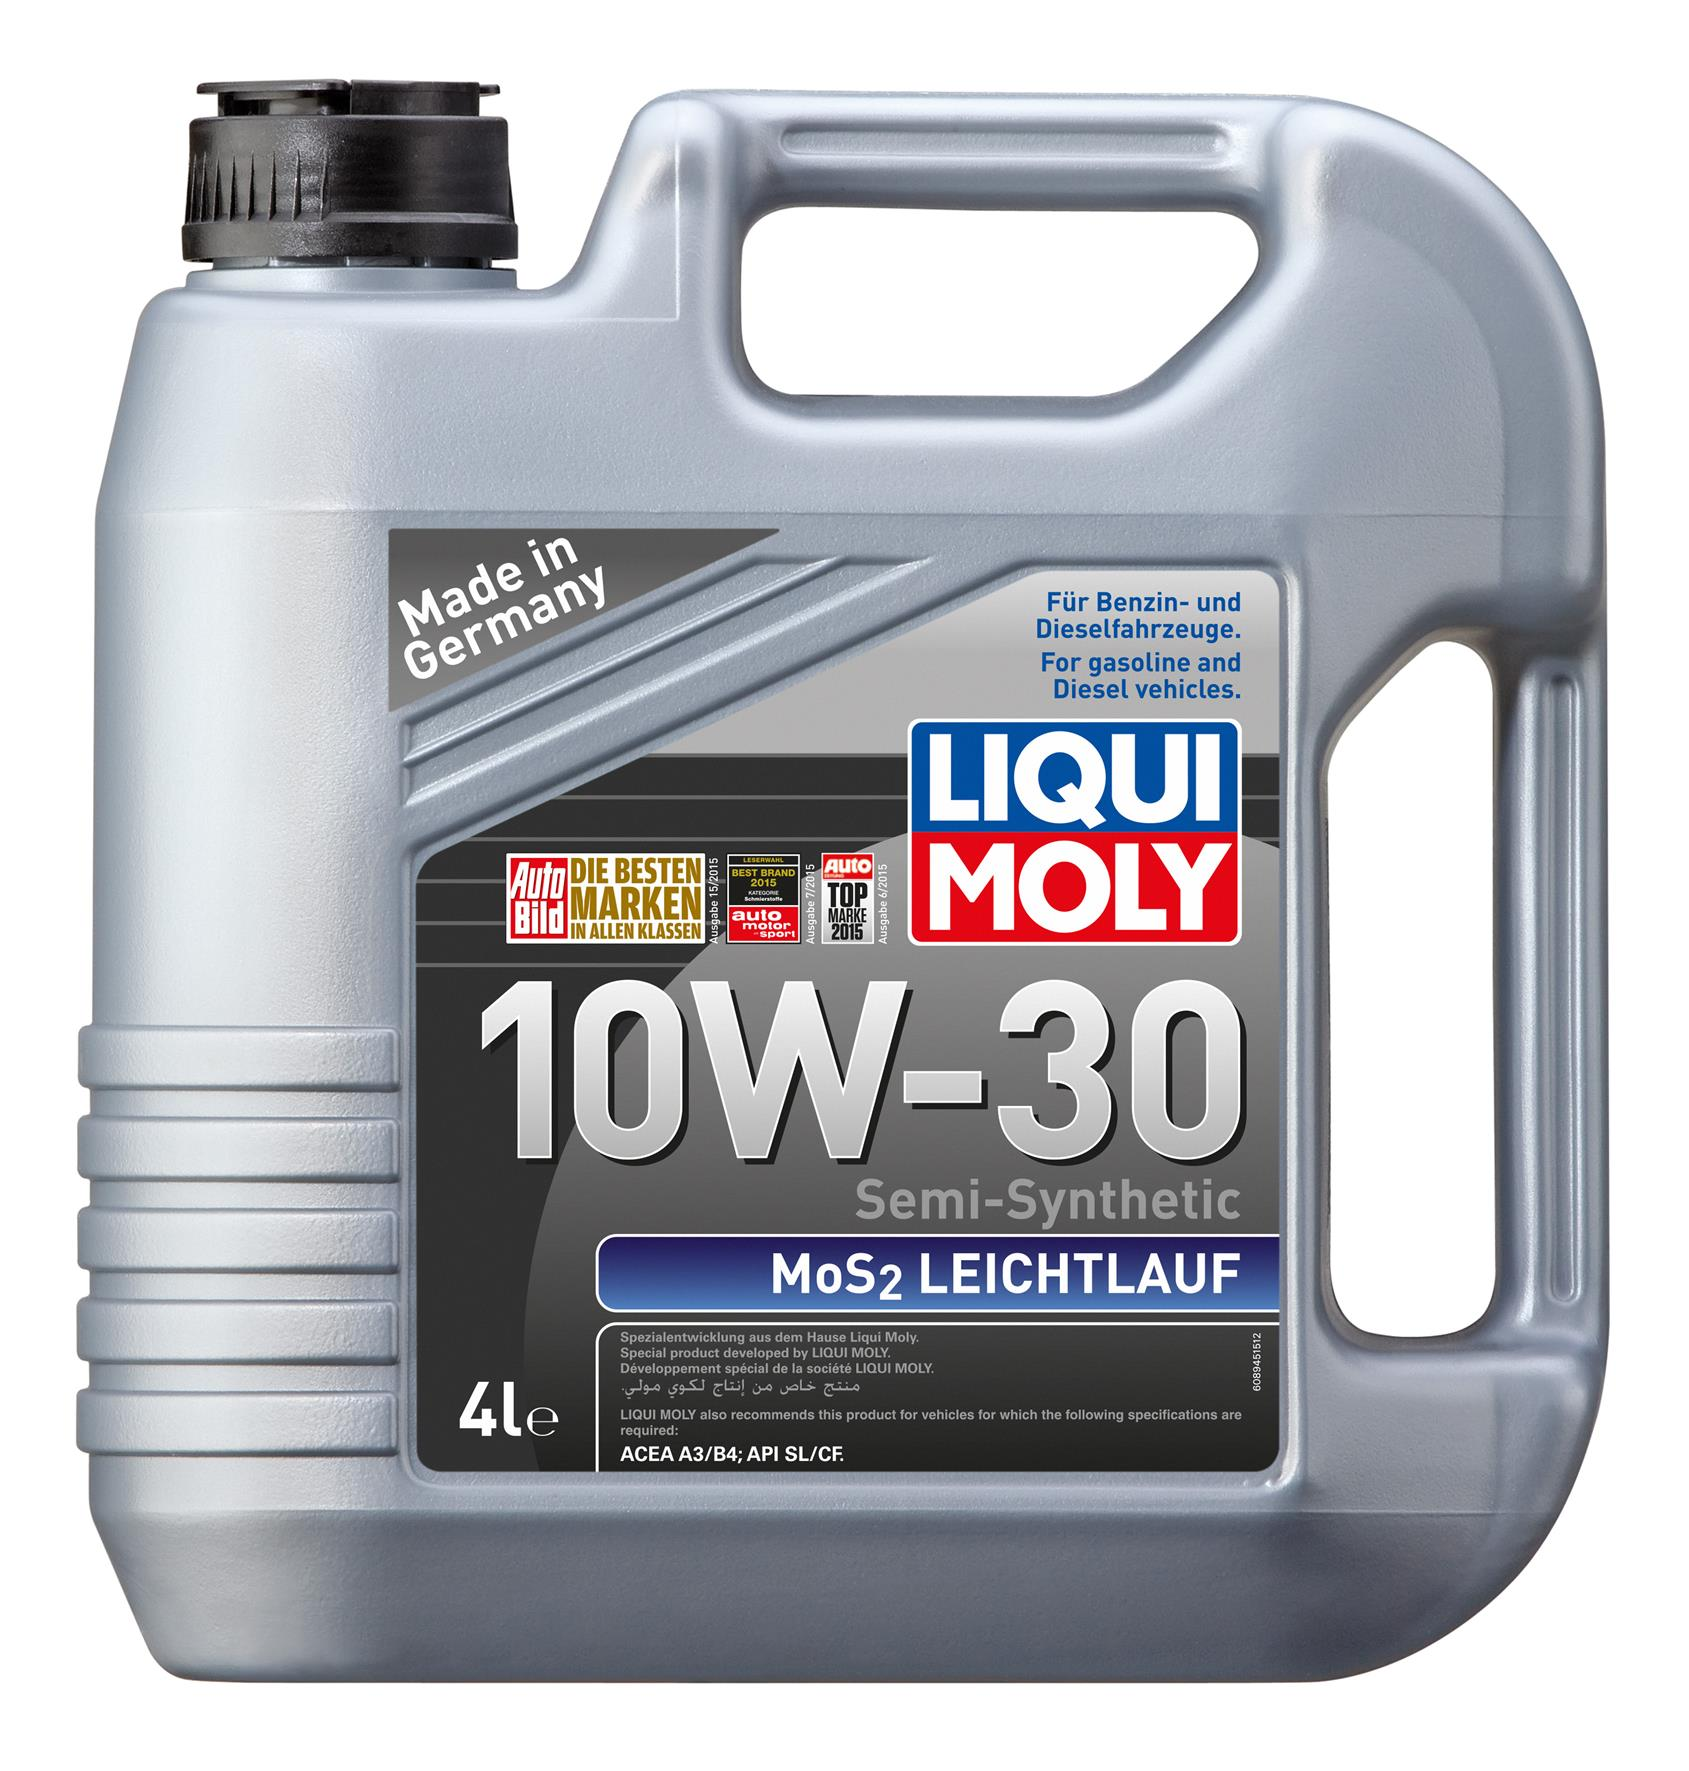 Liqui Moly Semi Synthetic Mos2 Leic End 12 26 2017 5 15 Pm